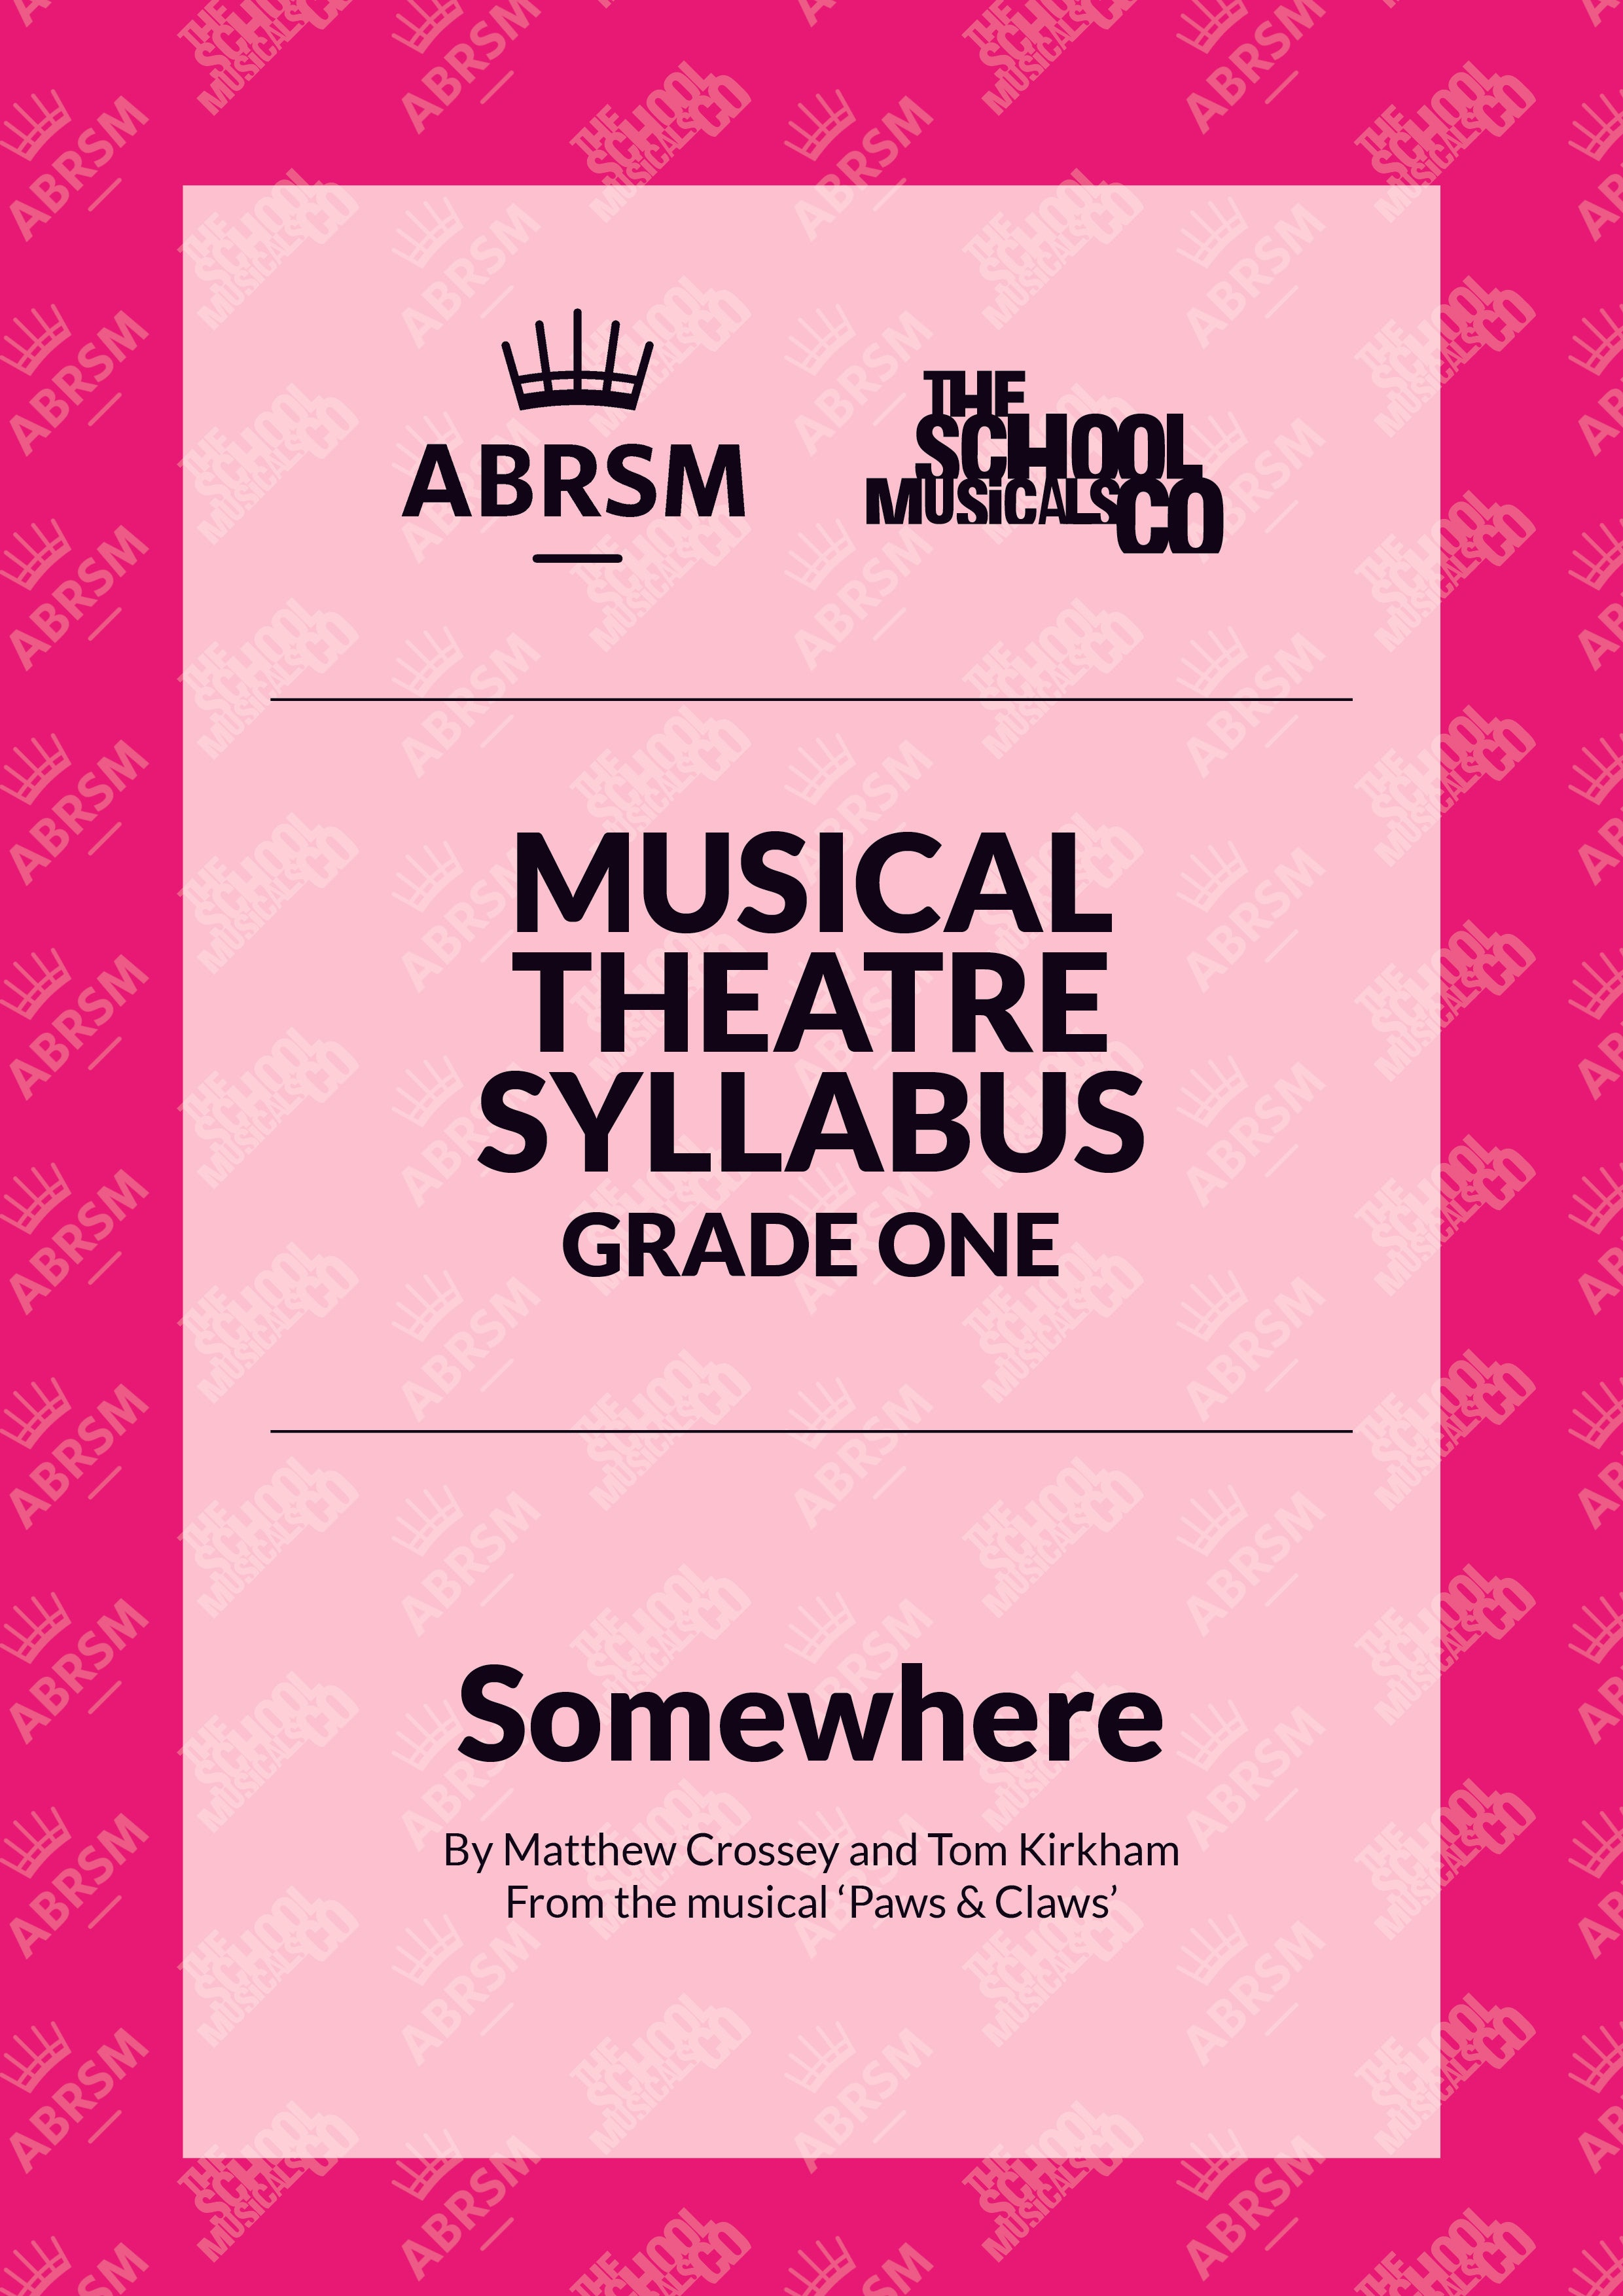 Somewhere - ABRSM Musical Theatre Syllabus Grade One